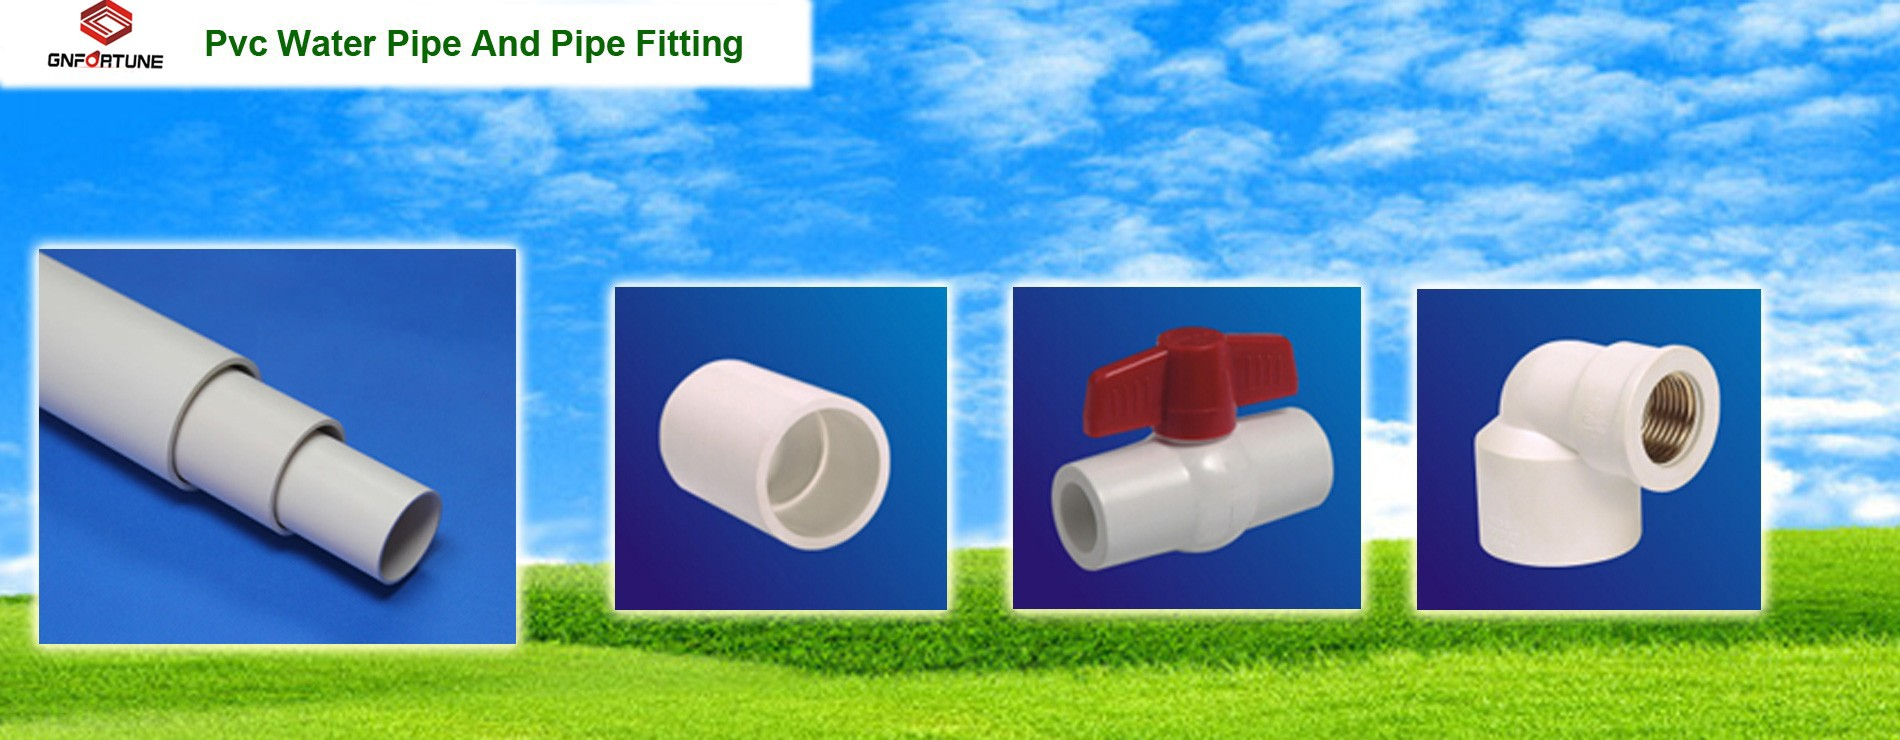 PVC WATER SUPPLY PIPES AND FITTINGS